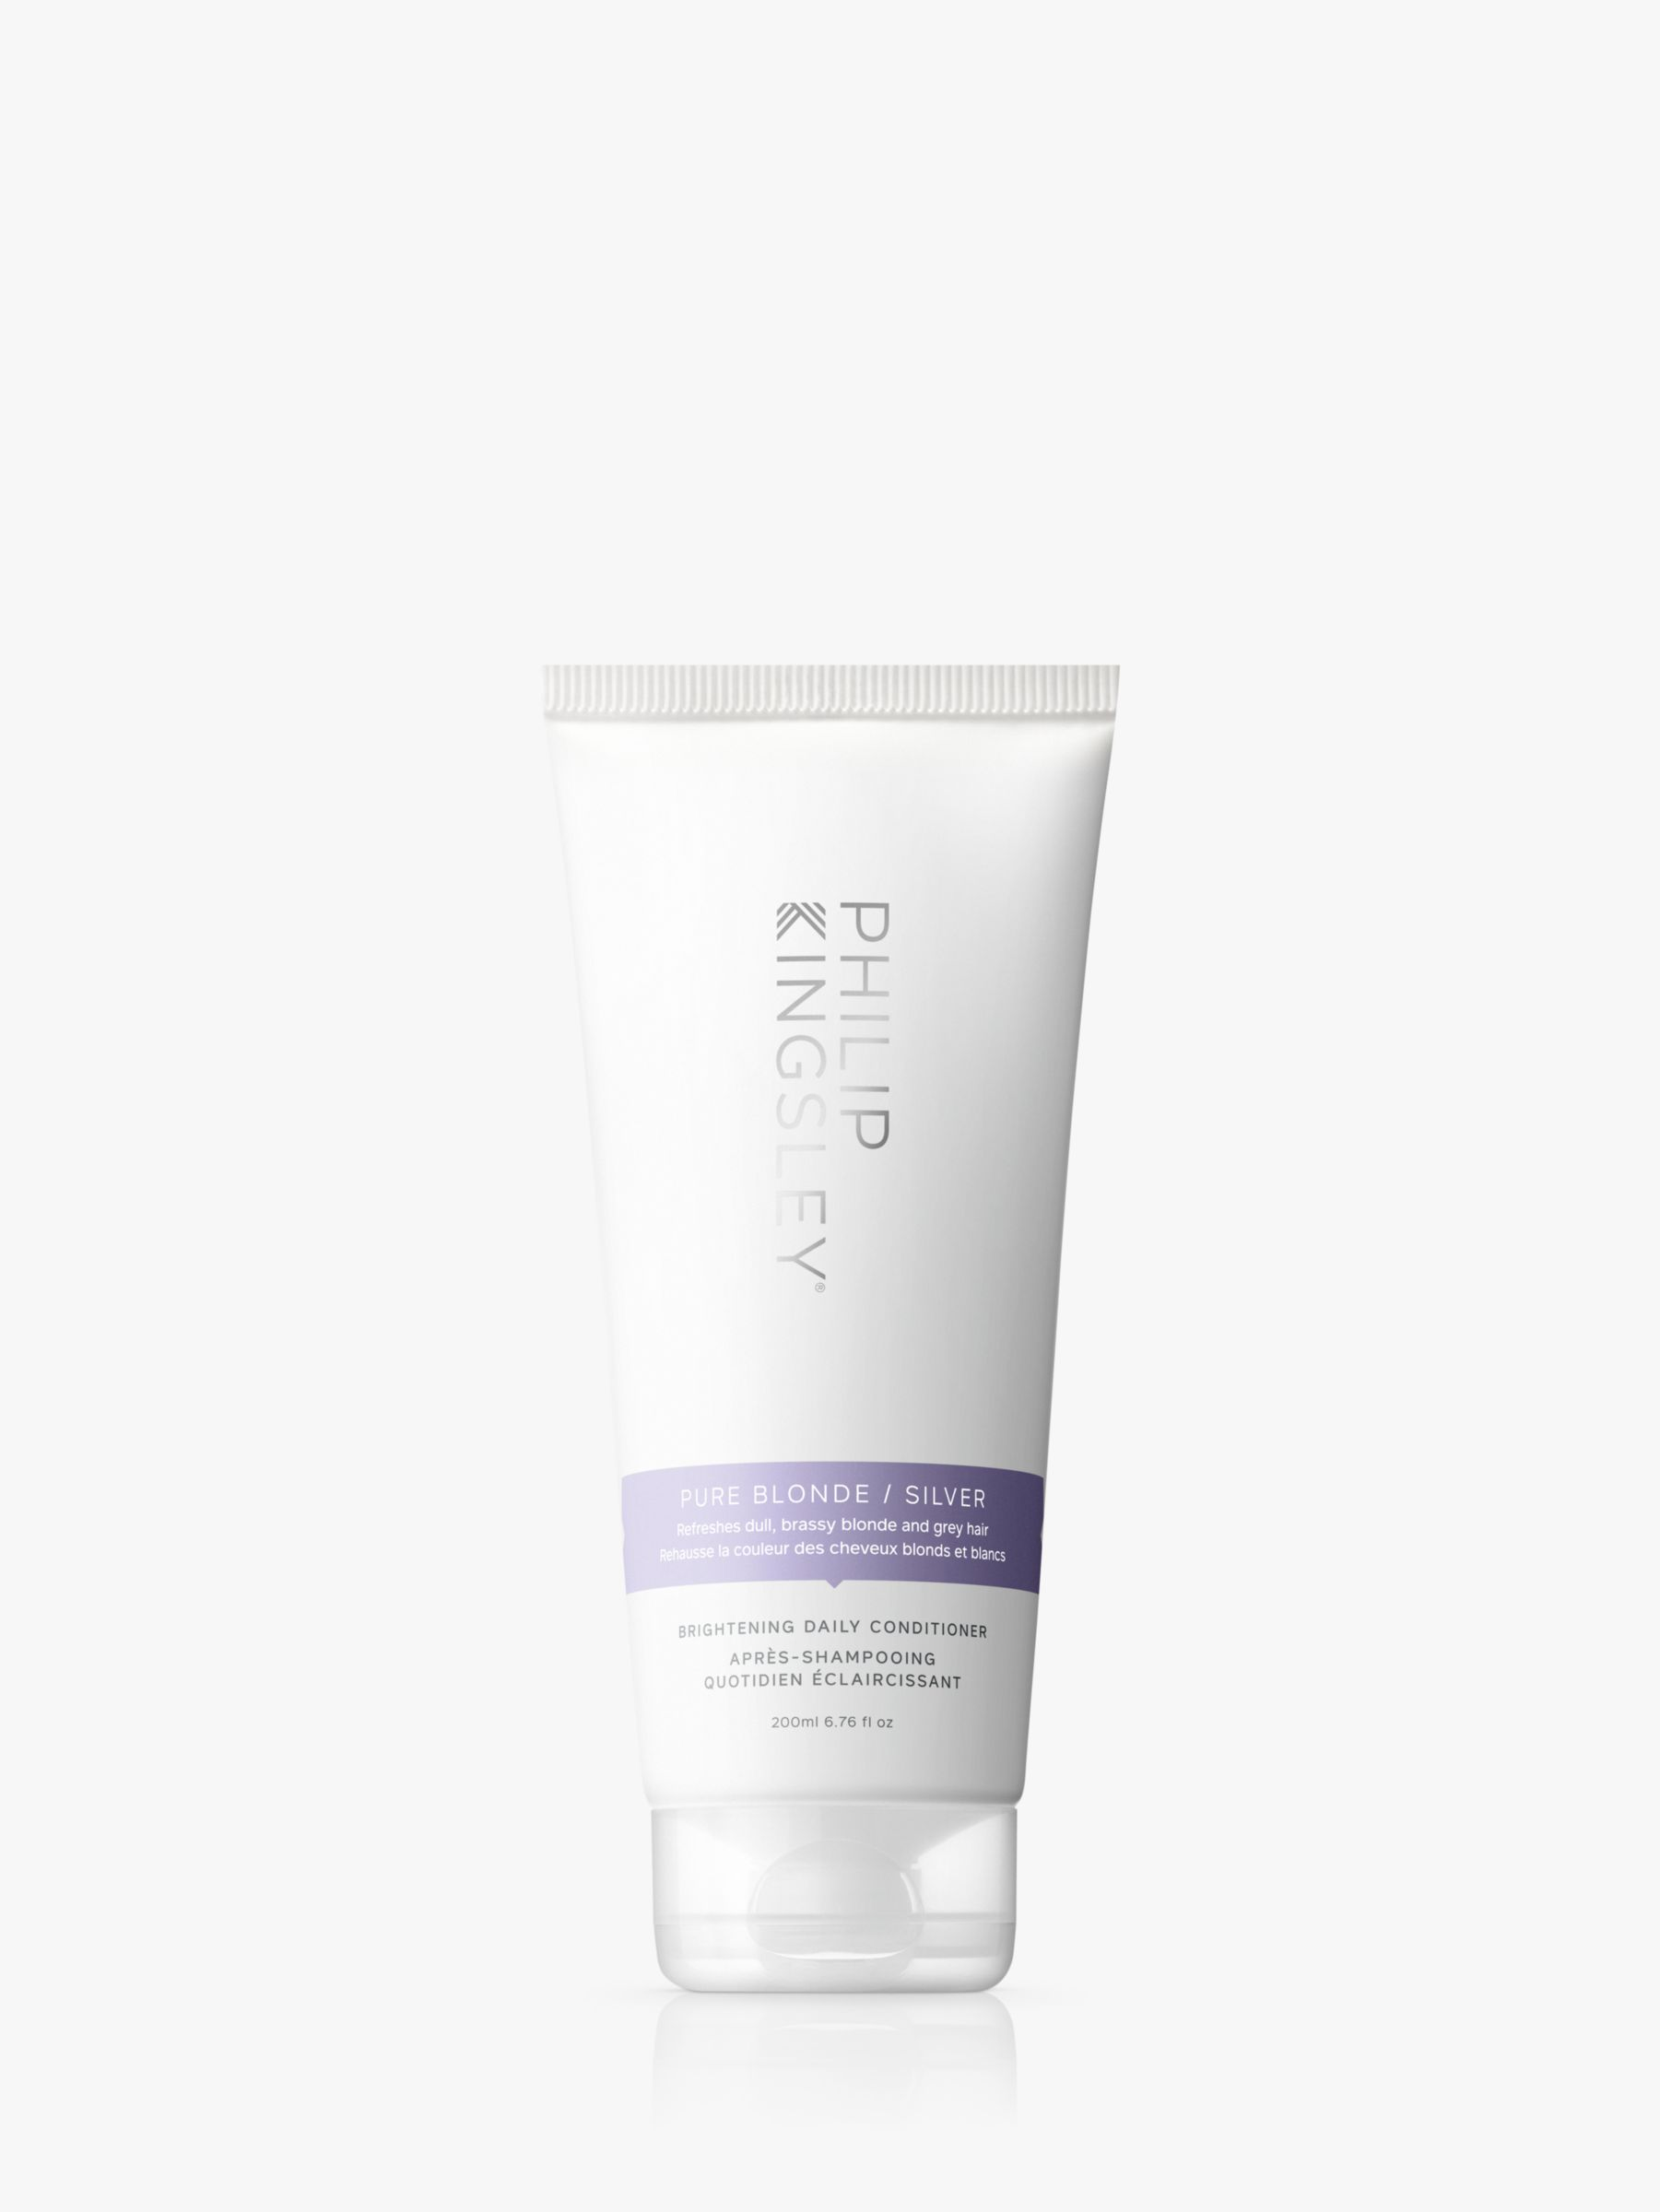 Philip Kingsley Philip Kingsley Pure Blonde/Silver Brightening Daily Conditioner, 200ml